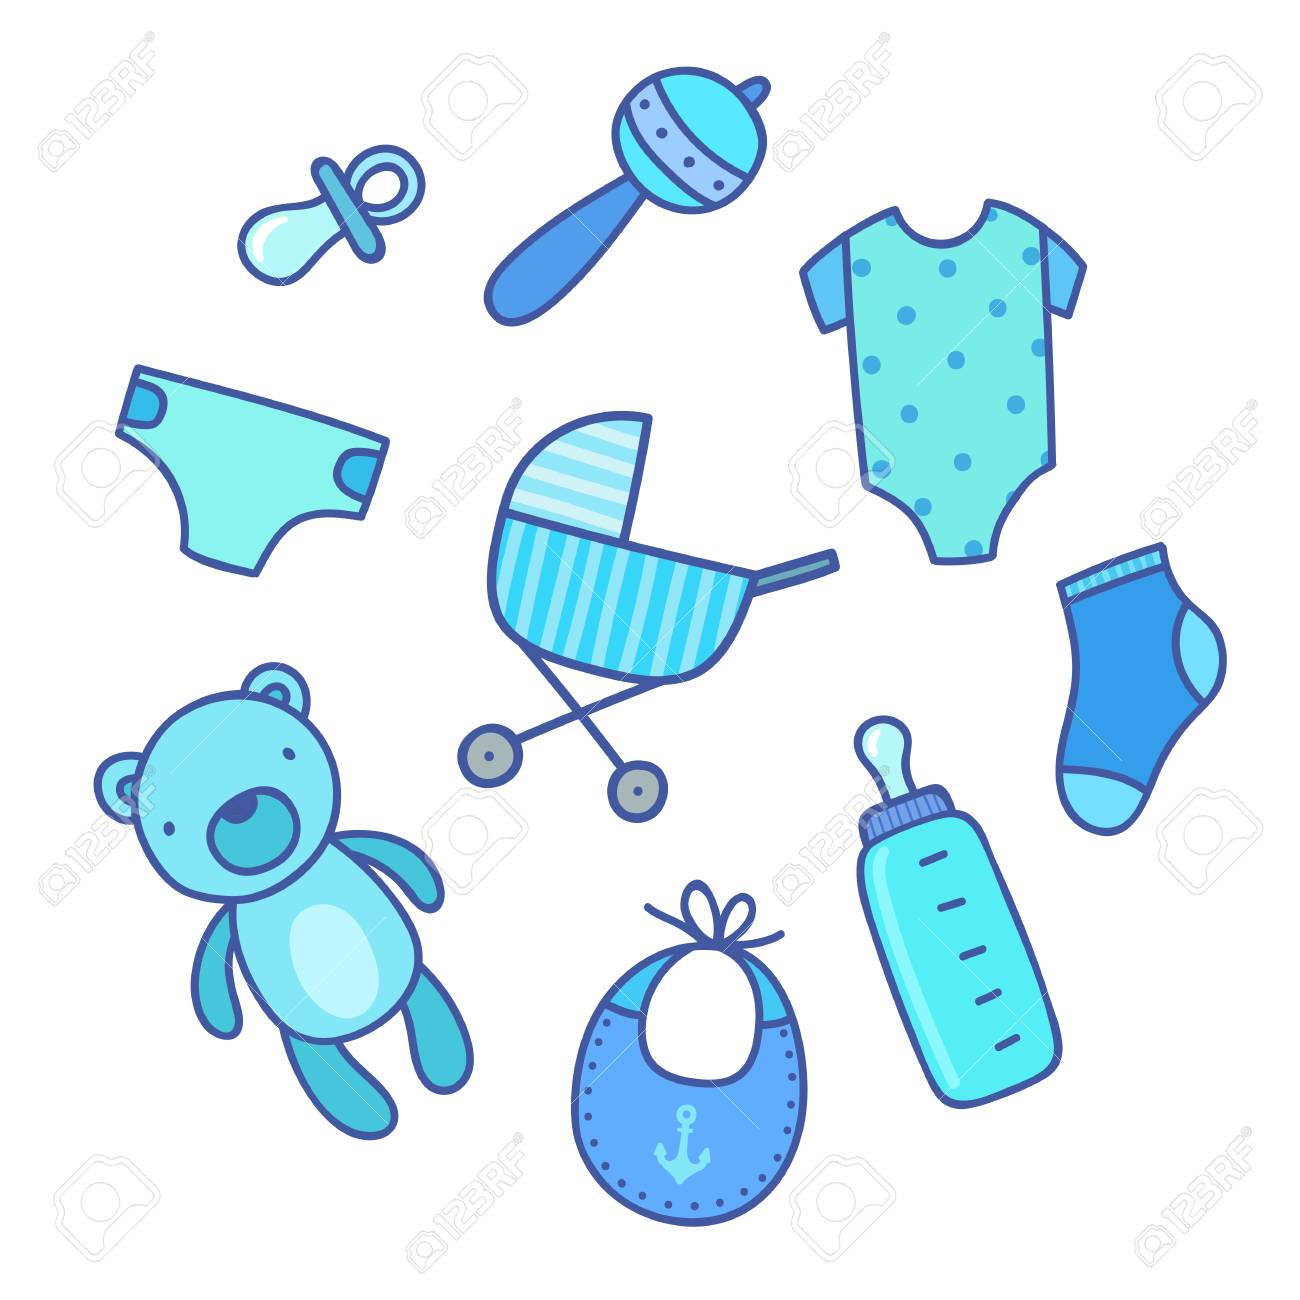 7302c34a8 Baby Boy Things. Vector Hand Drawn Illustration Royalty Free ...